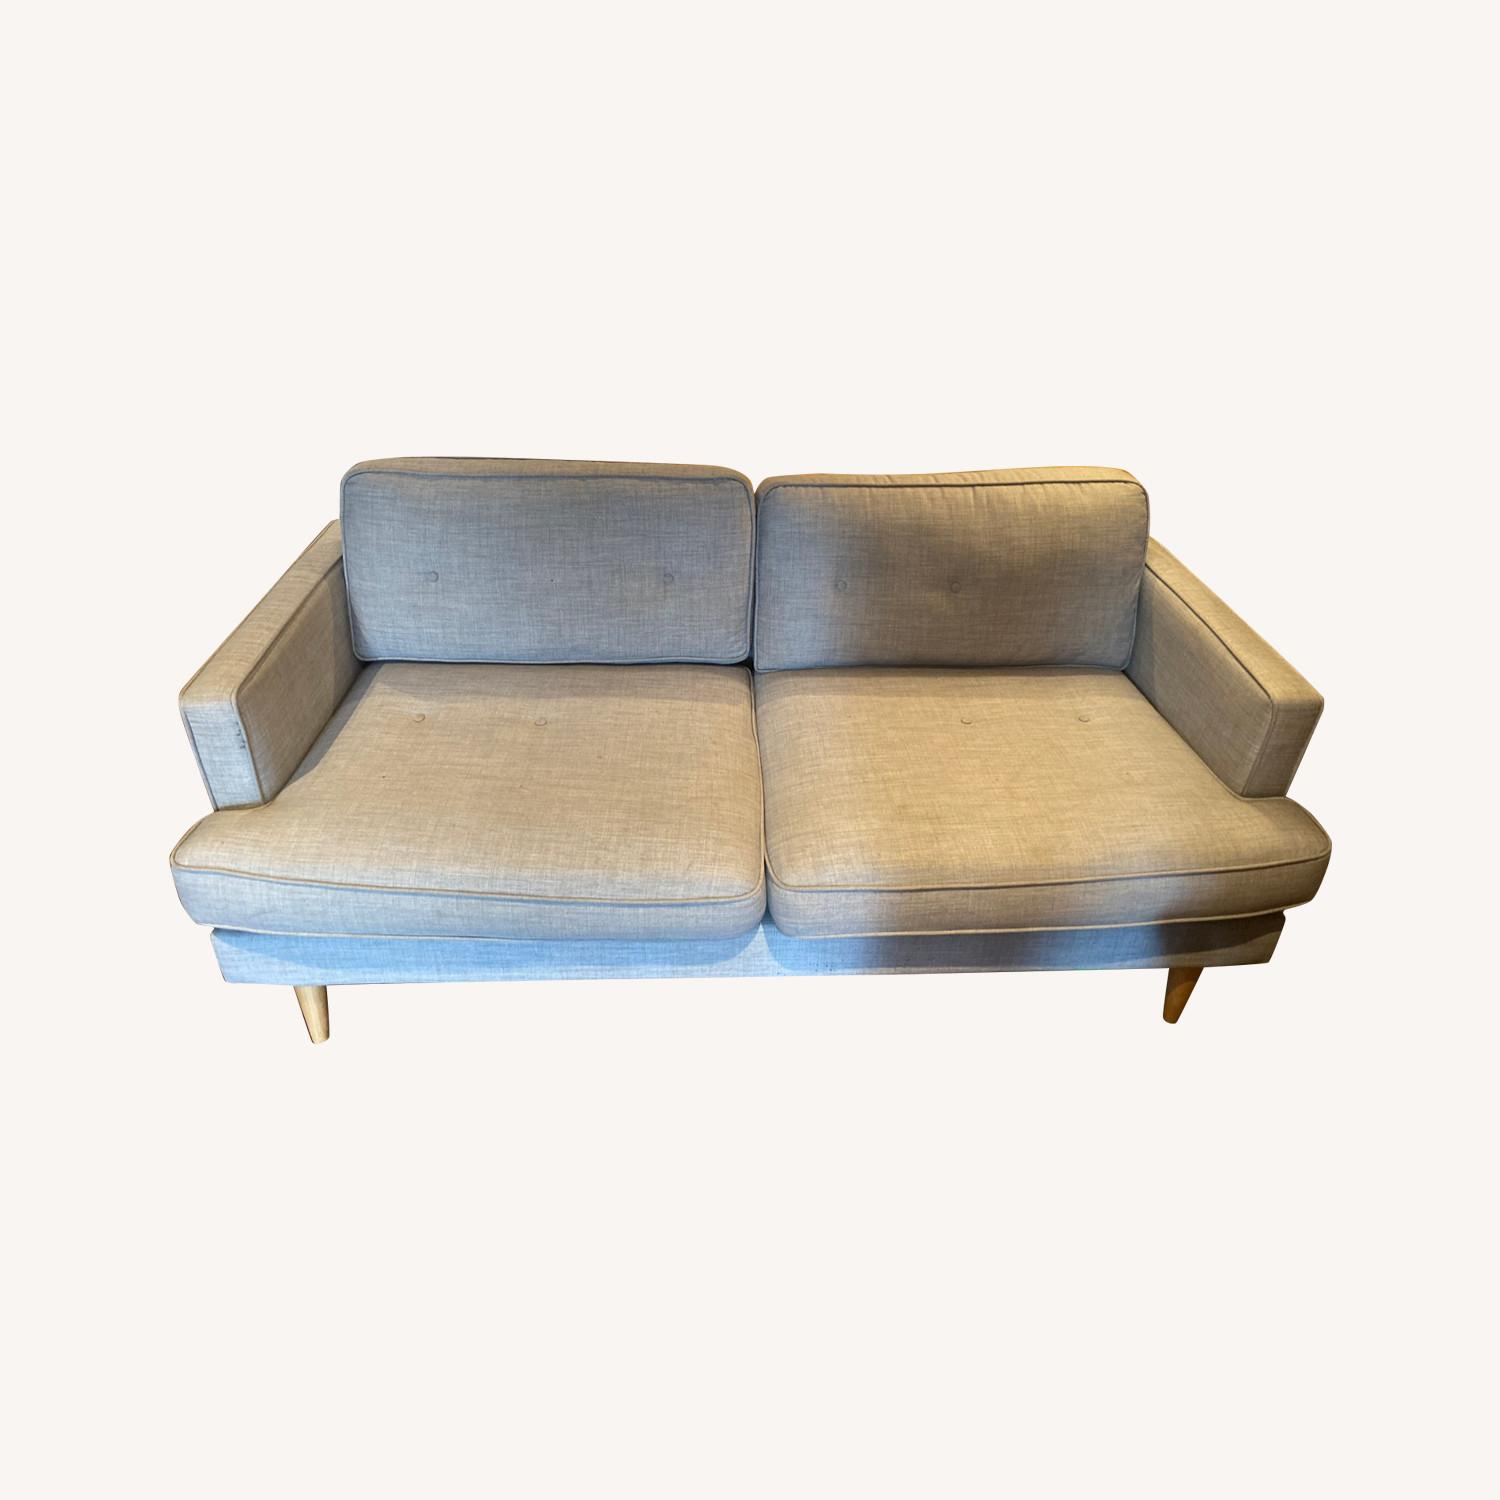 World Market Dove Grey Sofa - image-0